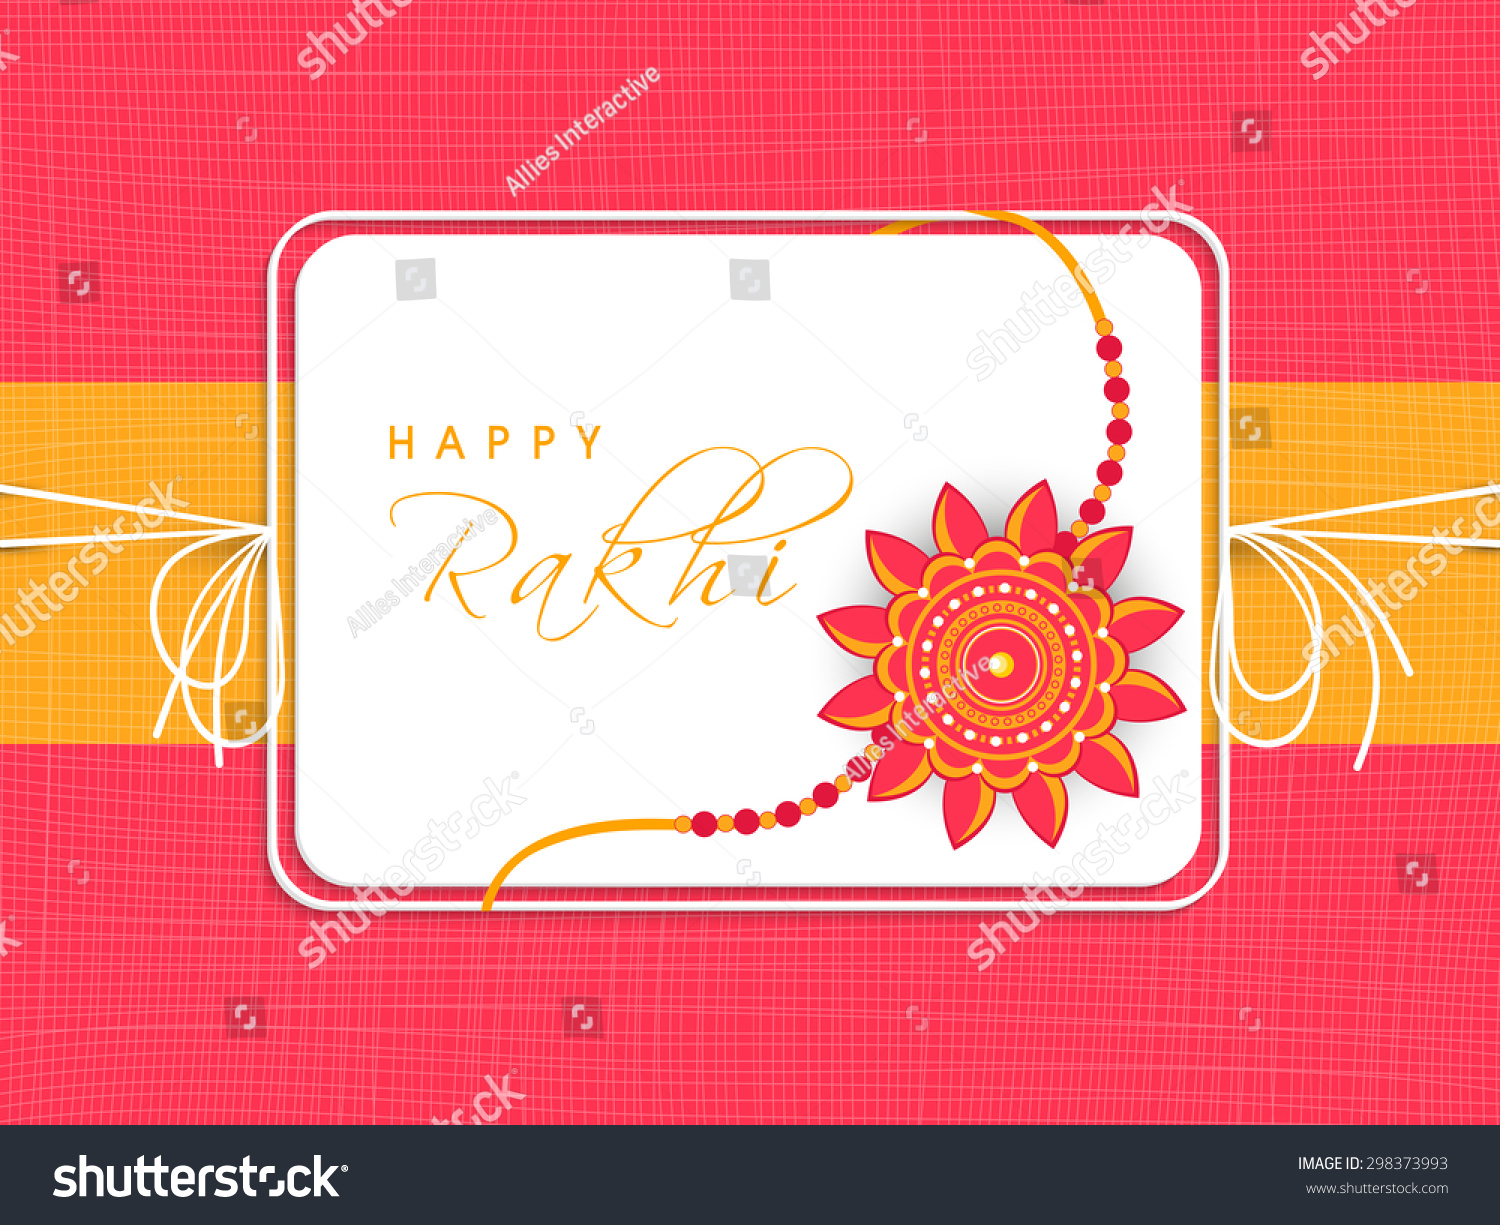 Creative Greeting Card Design Decorated Beautiful Stock Vector